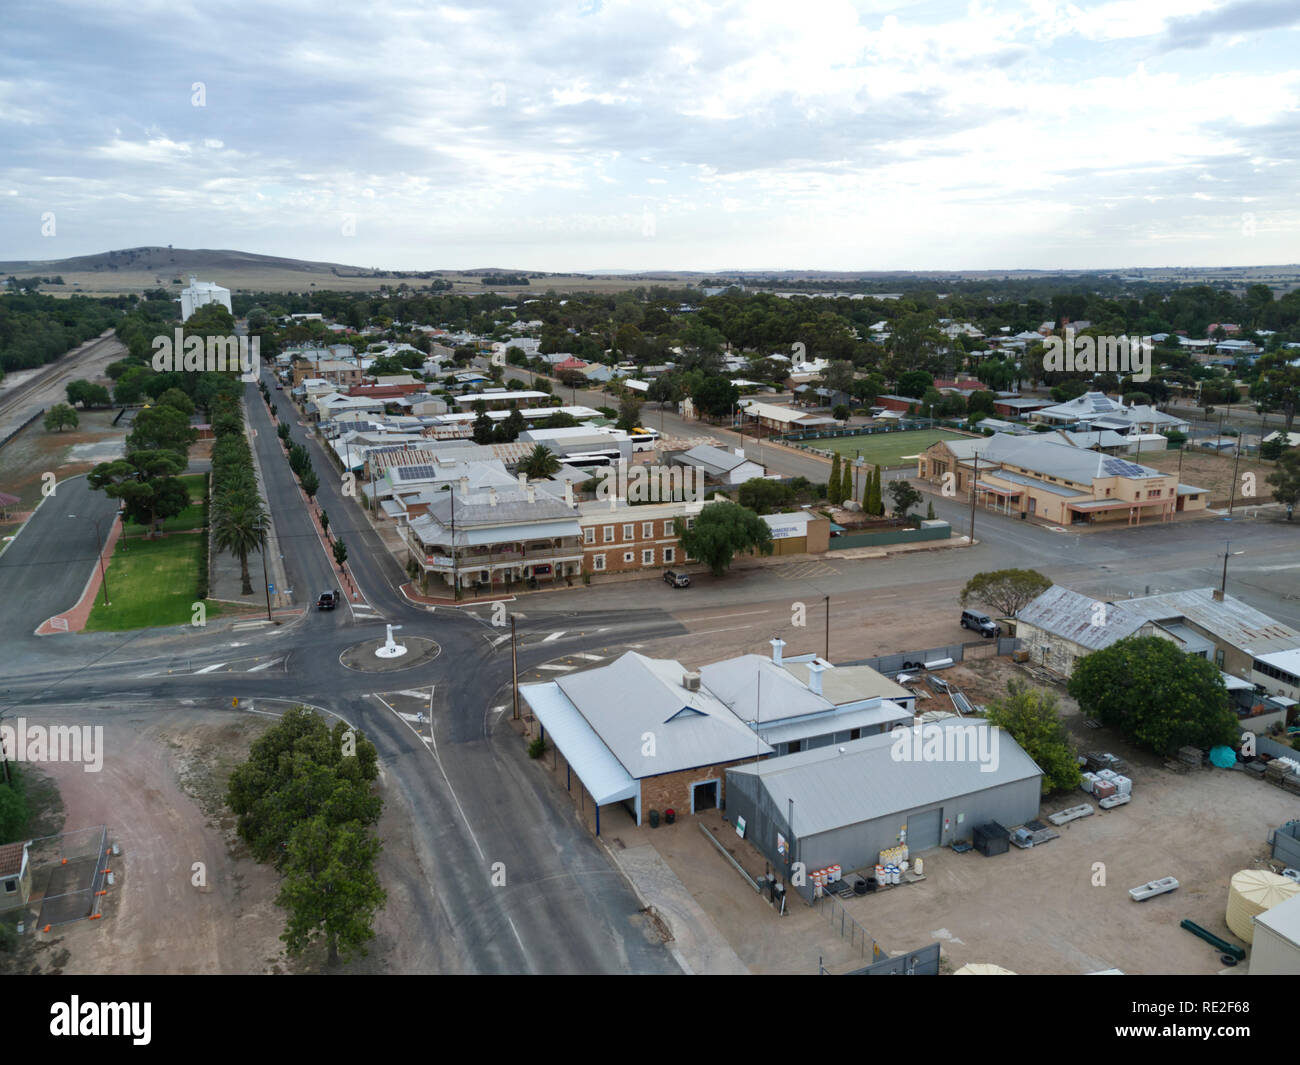 Aerials of Gladstone Street the main retail area of Gladstone South Australia - Stock Image